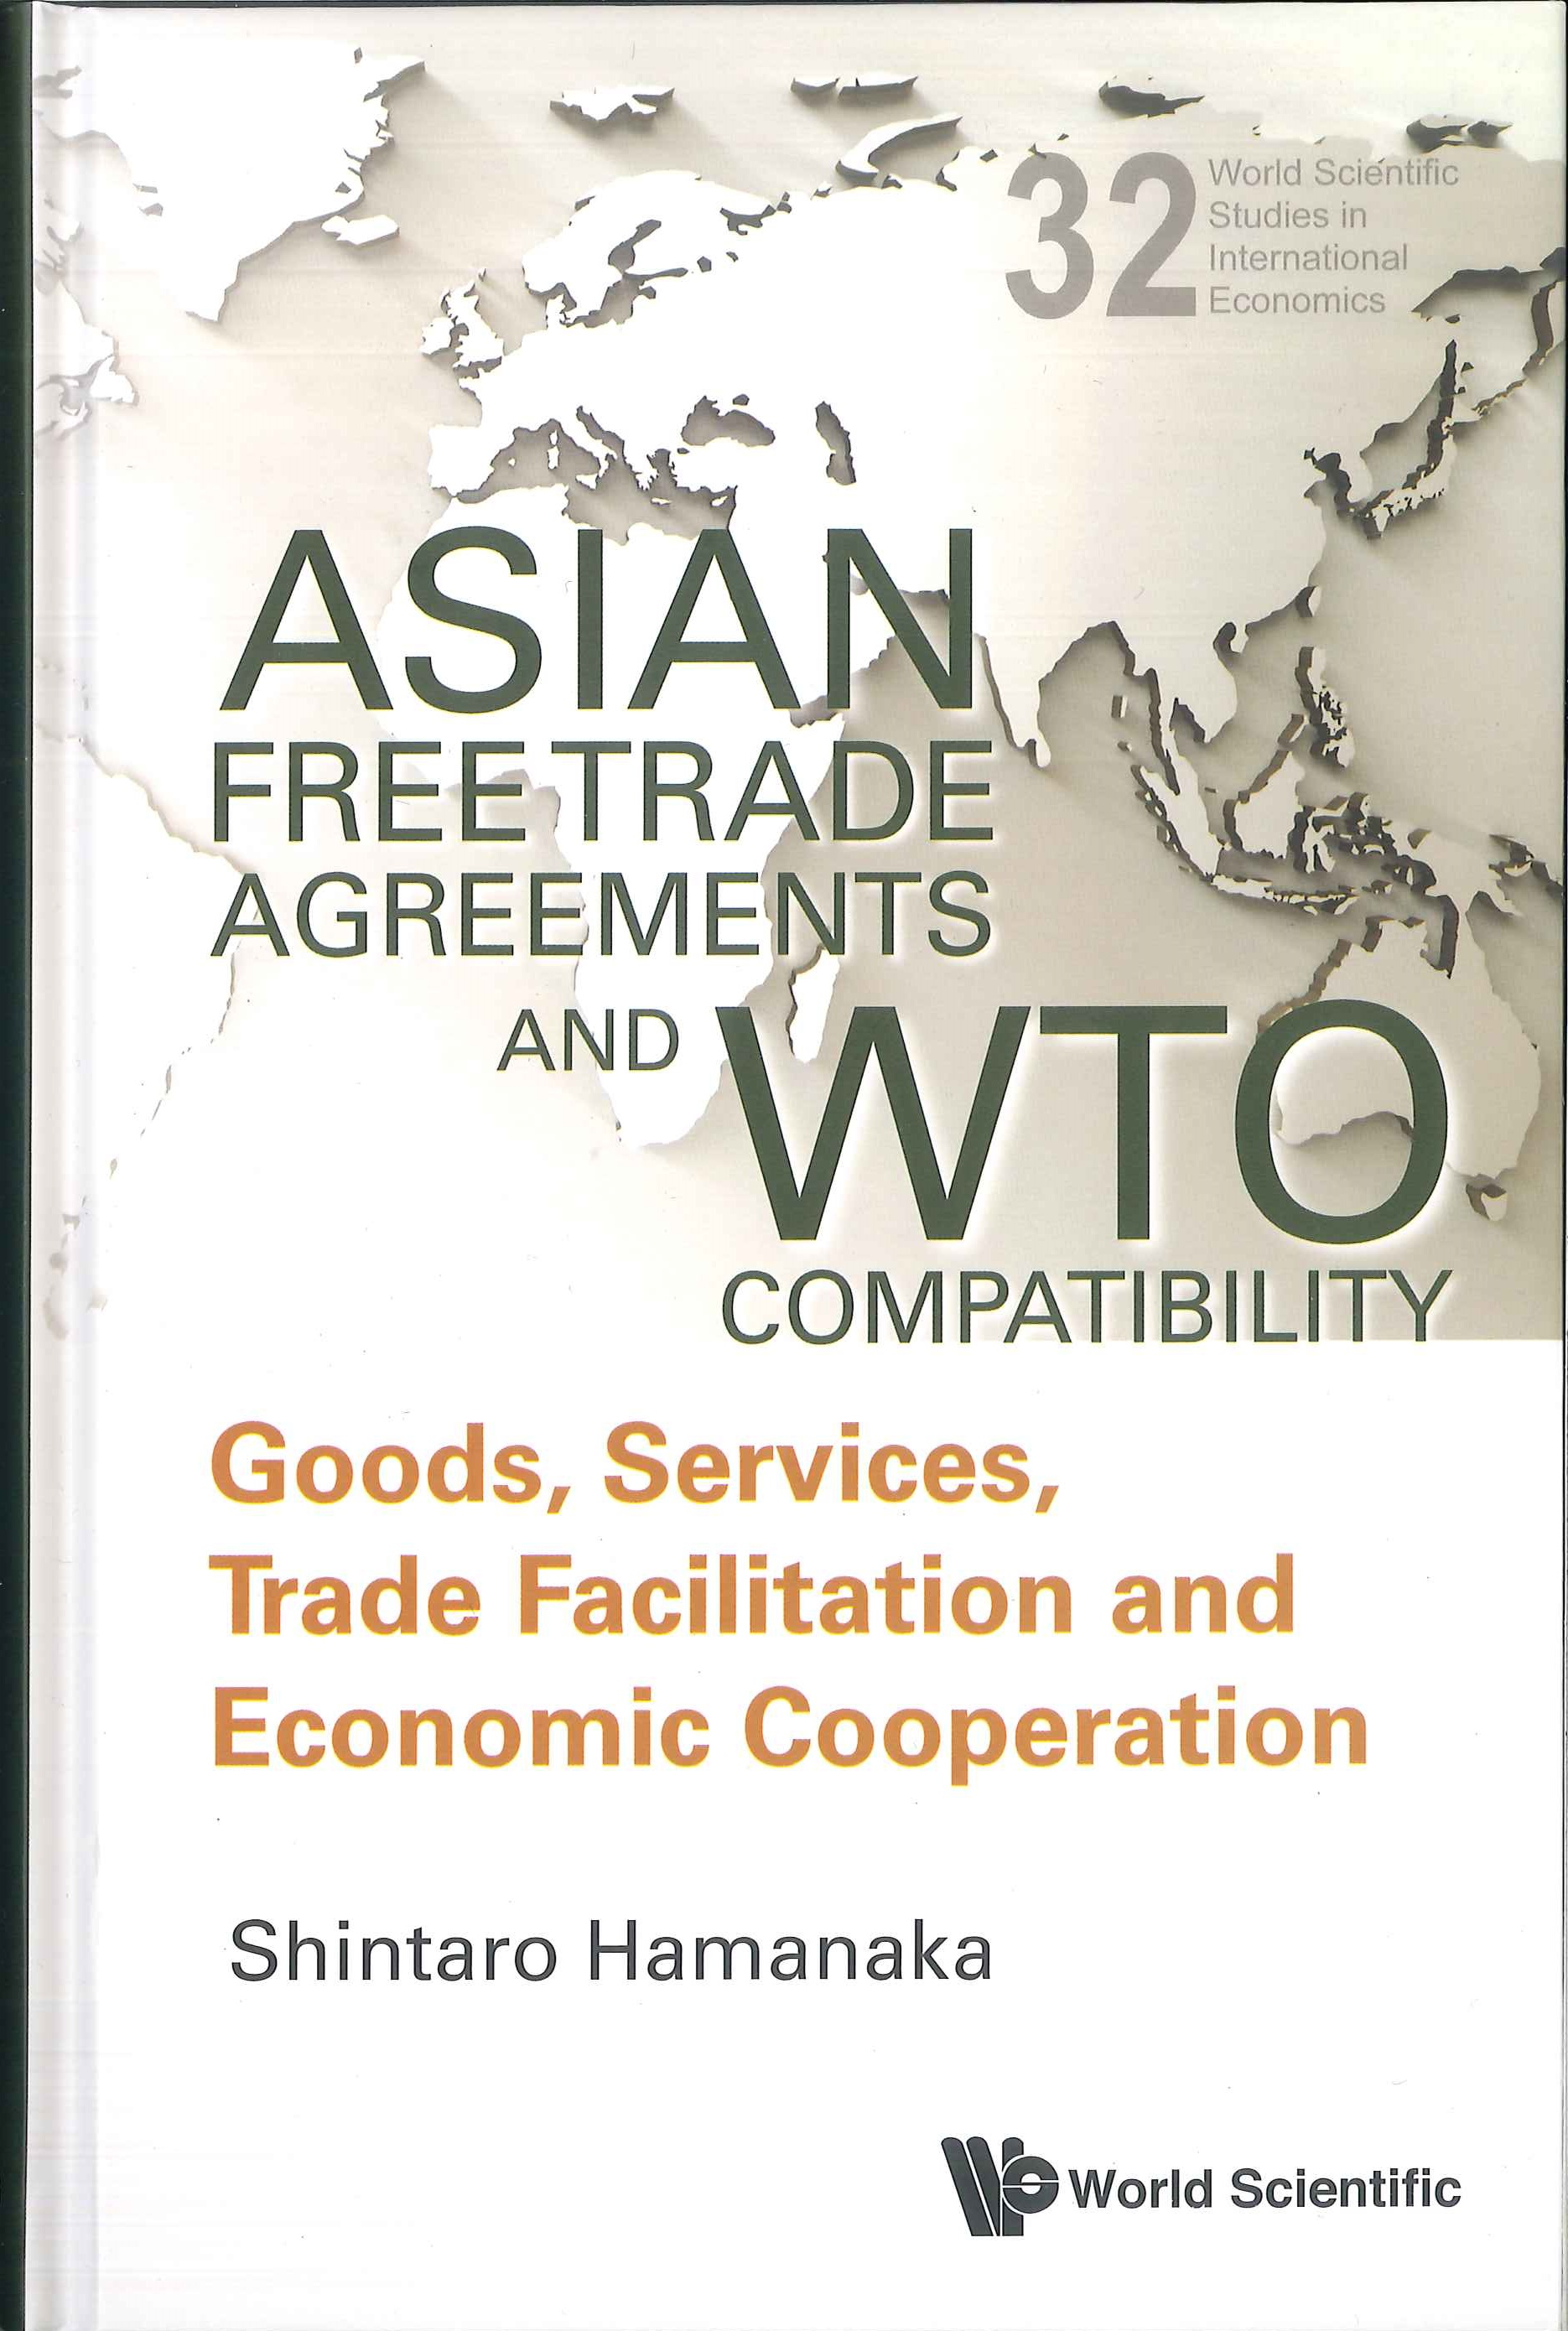 Asian free trade agreements and WTO compatibility:goods, services, trade facilitation and economic cooperation